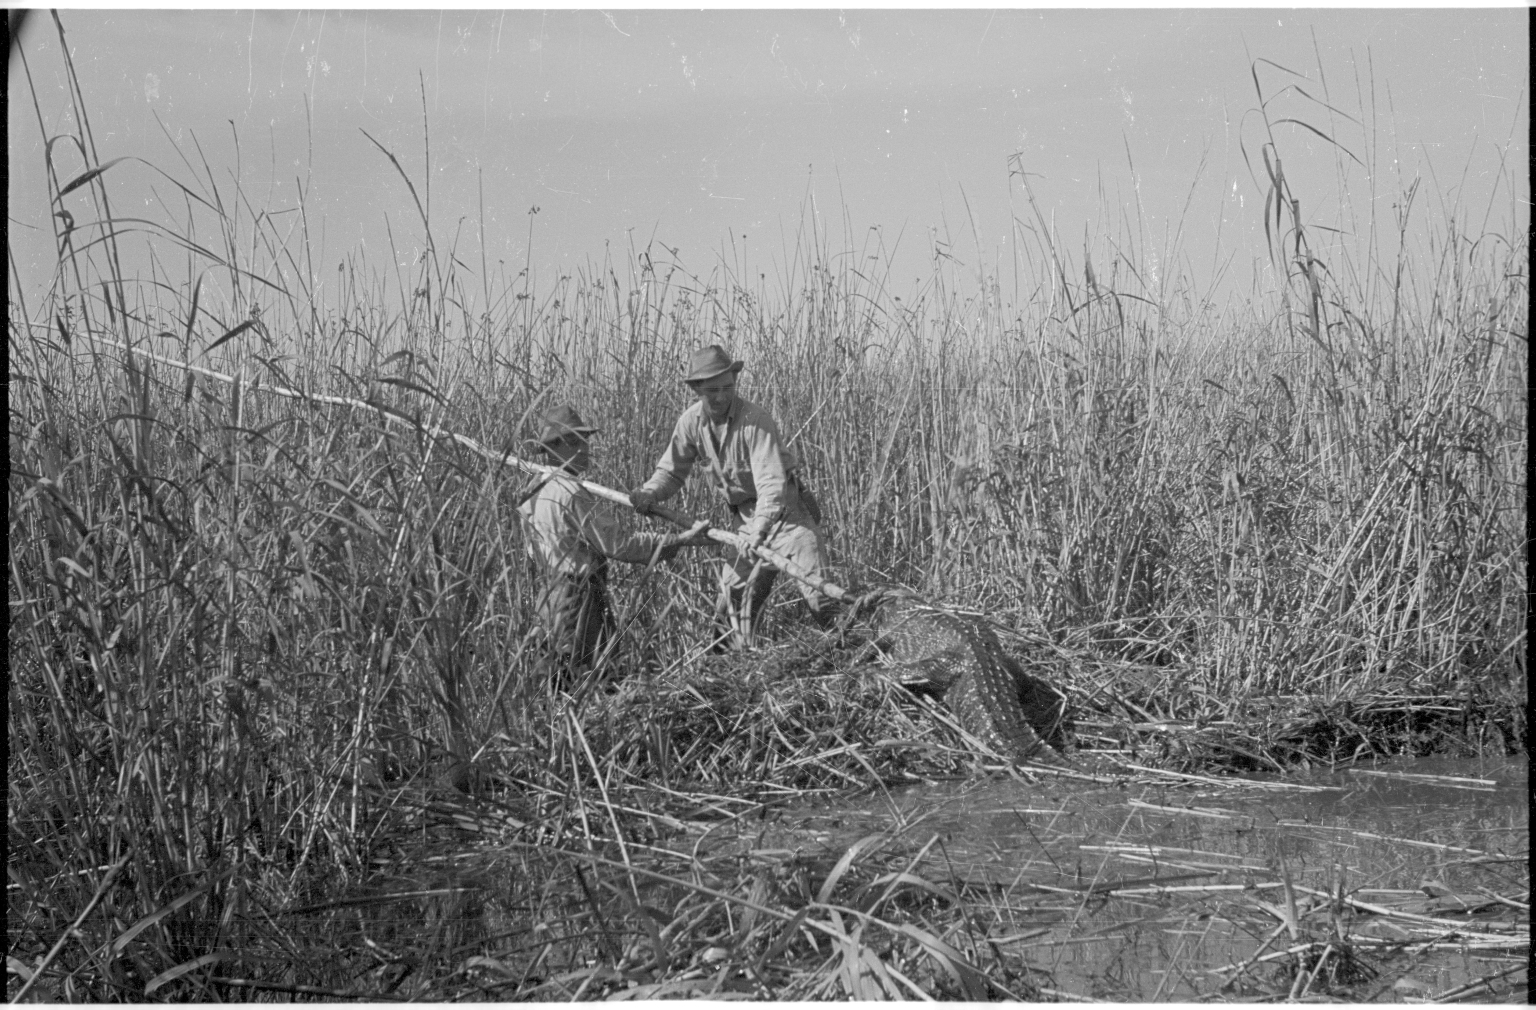 Alligator hunting in Louisiana